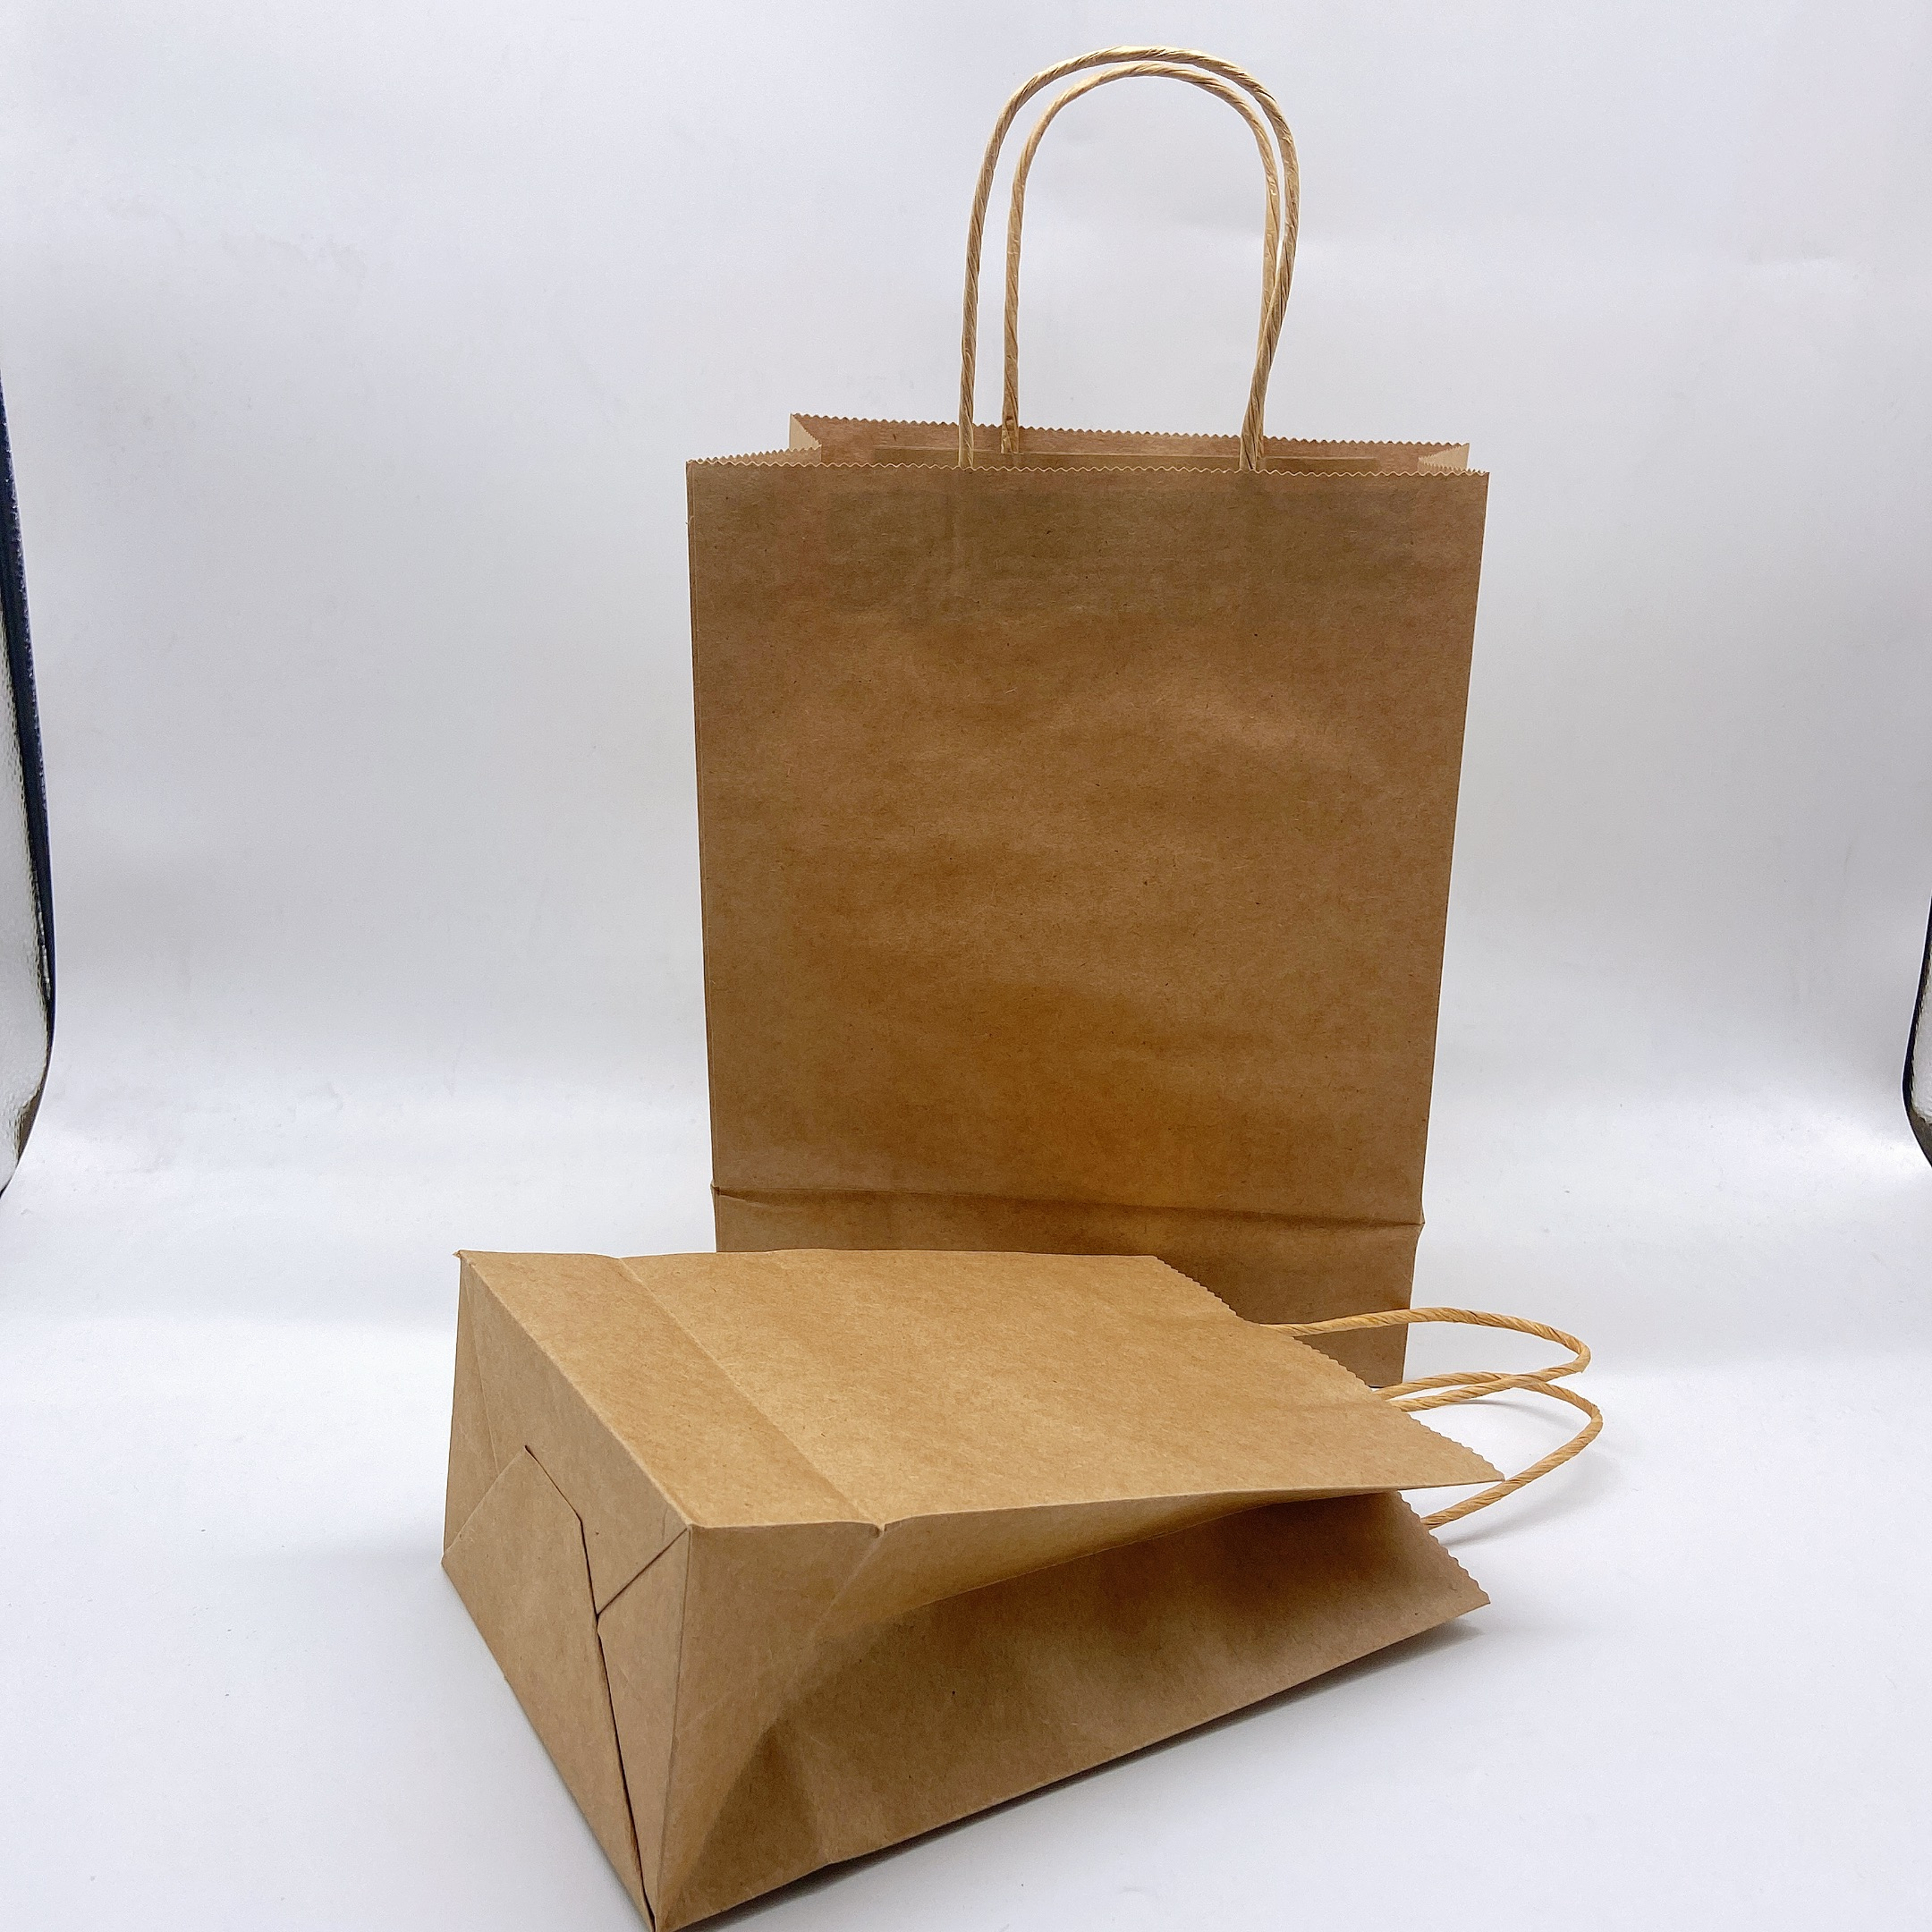 Custom Black Paper Gift Bags Retail Bags Low Quantities Party Bags Wedding Gift Bags Merchandise Bag Sturdy Bag with Handles